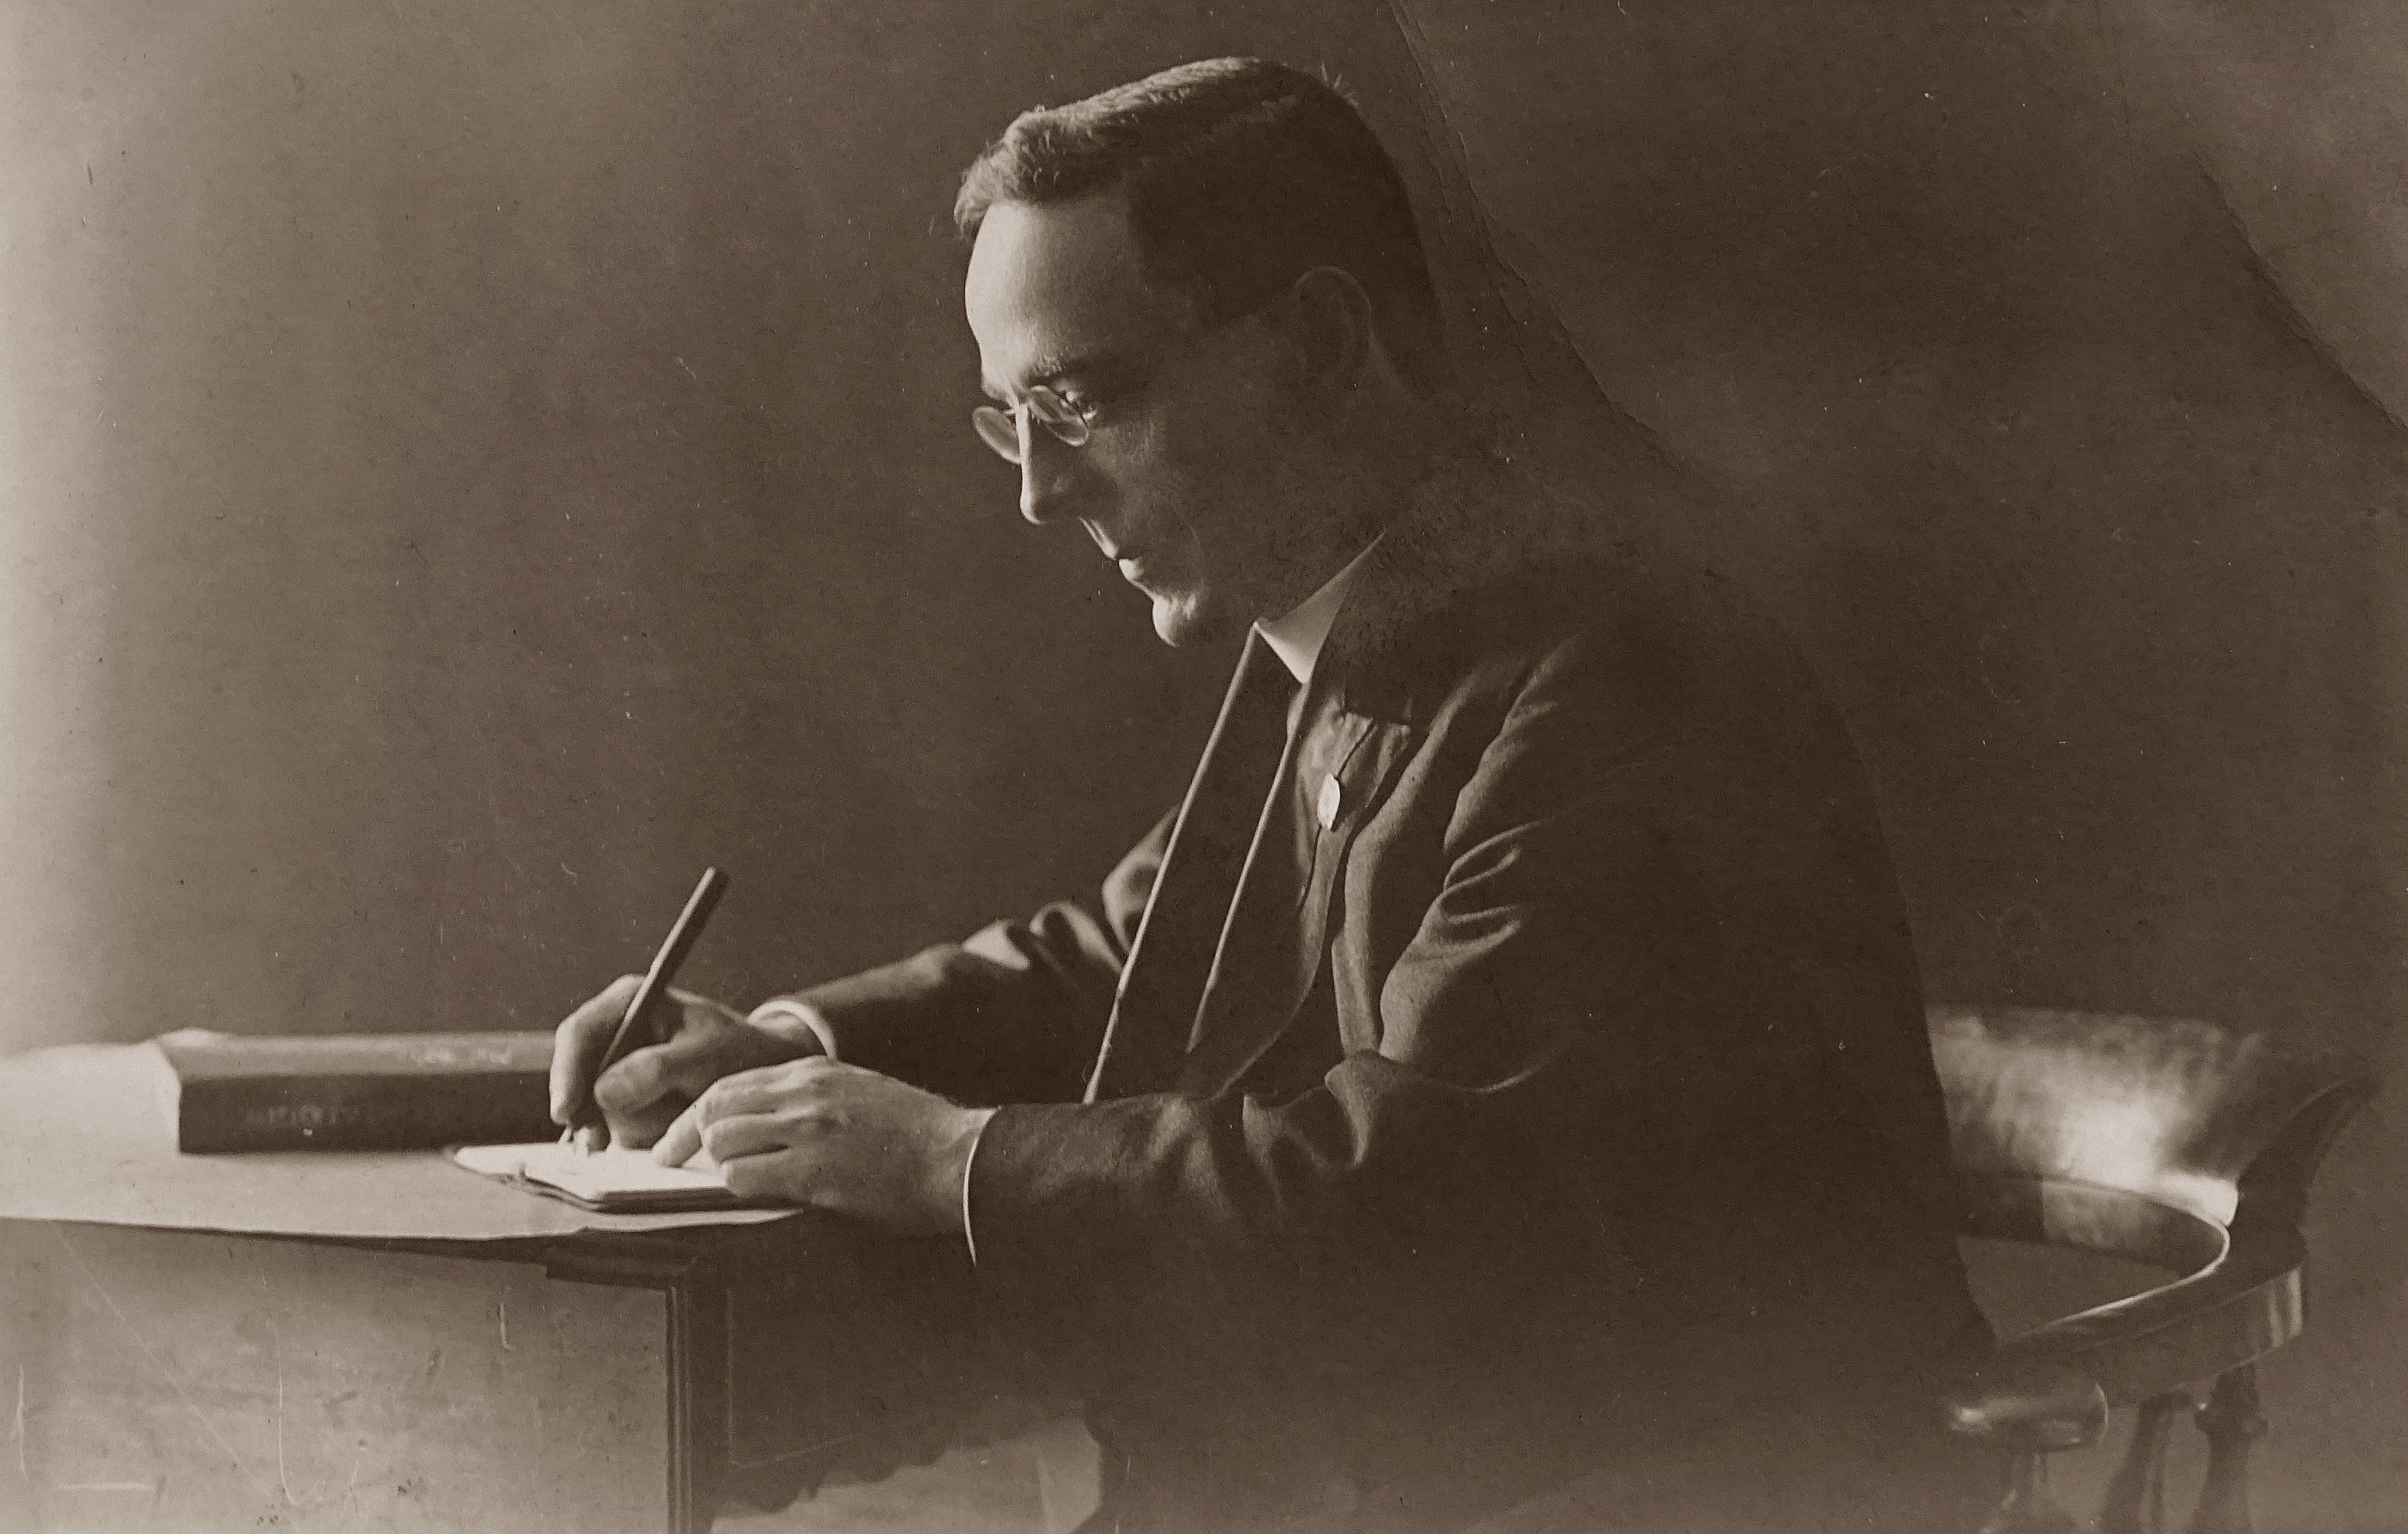 Black and white, old photo of a man's side profile, writing a letter